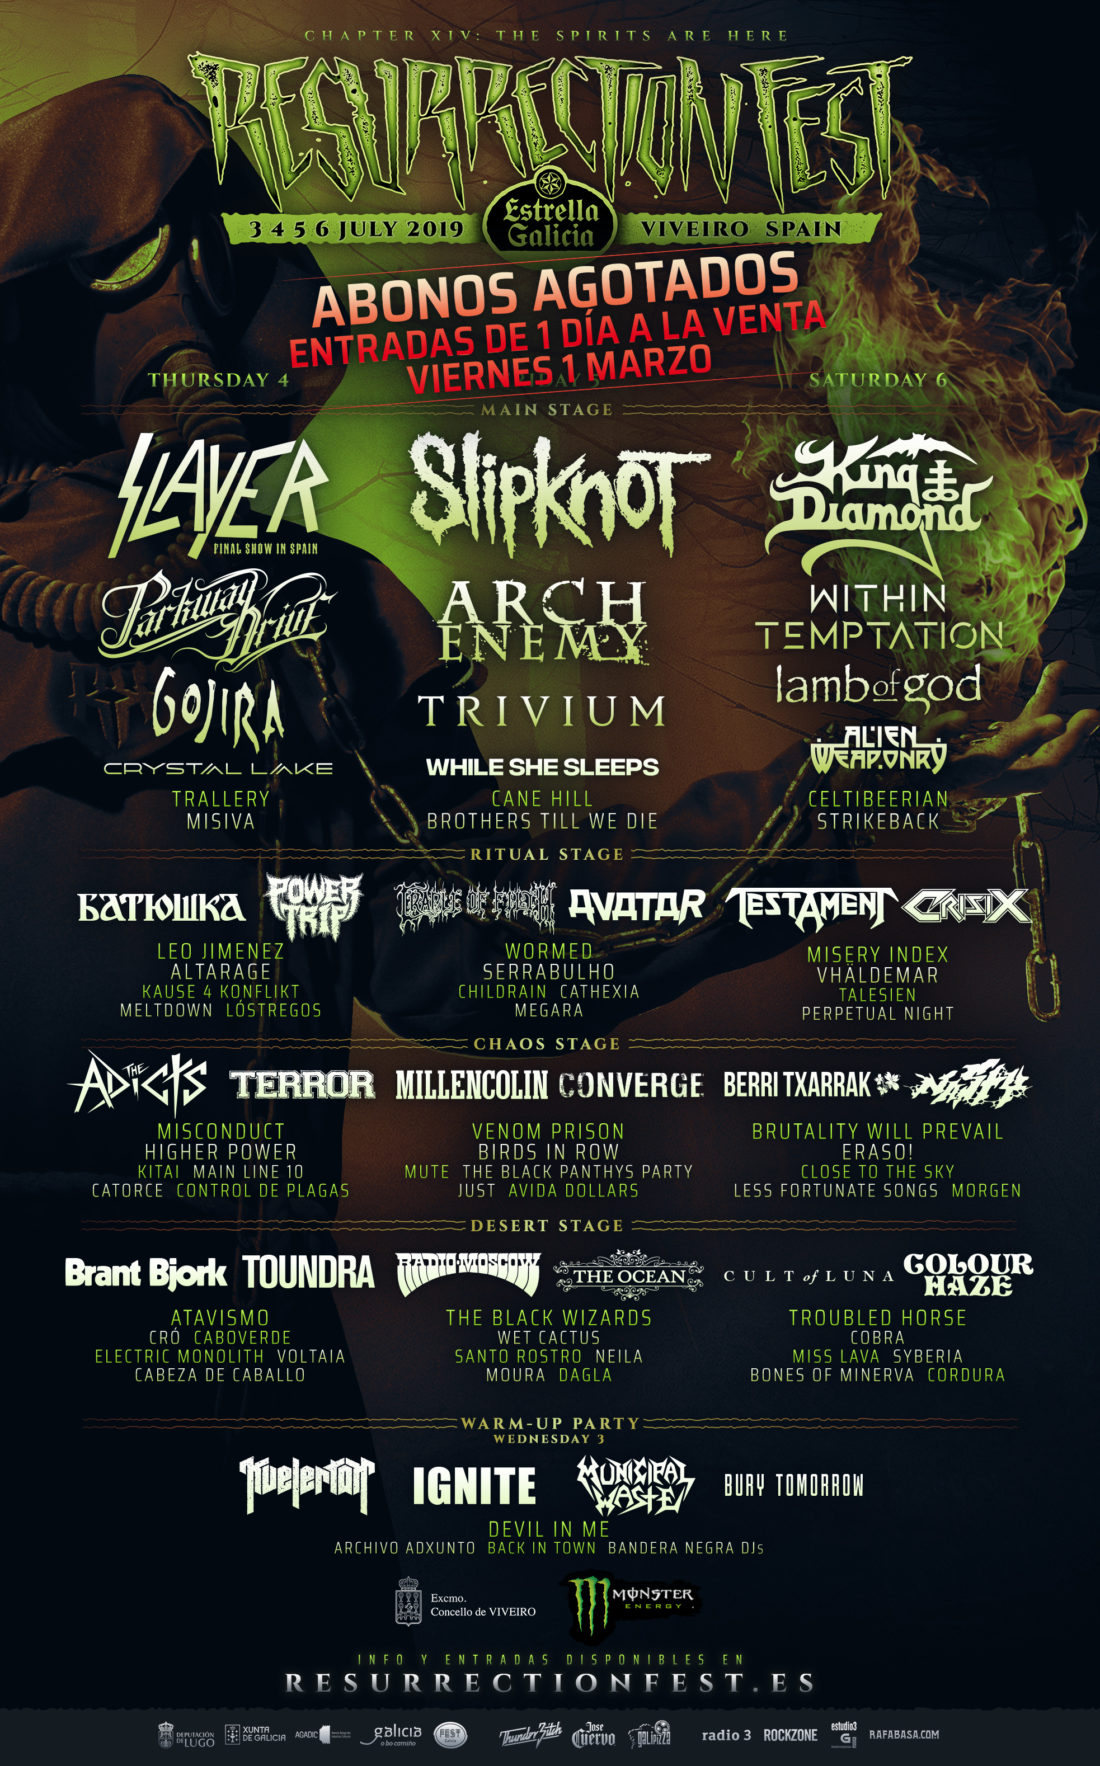 RESURRECTION FEST 2019 - Página 2 Resurrection-Fest-2019-Poster-Split-By-Days-1100x1766